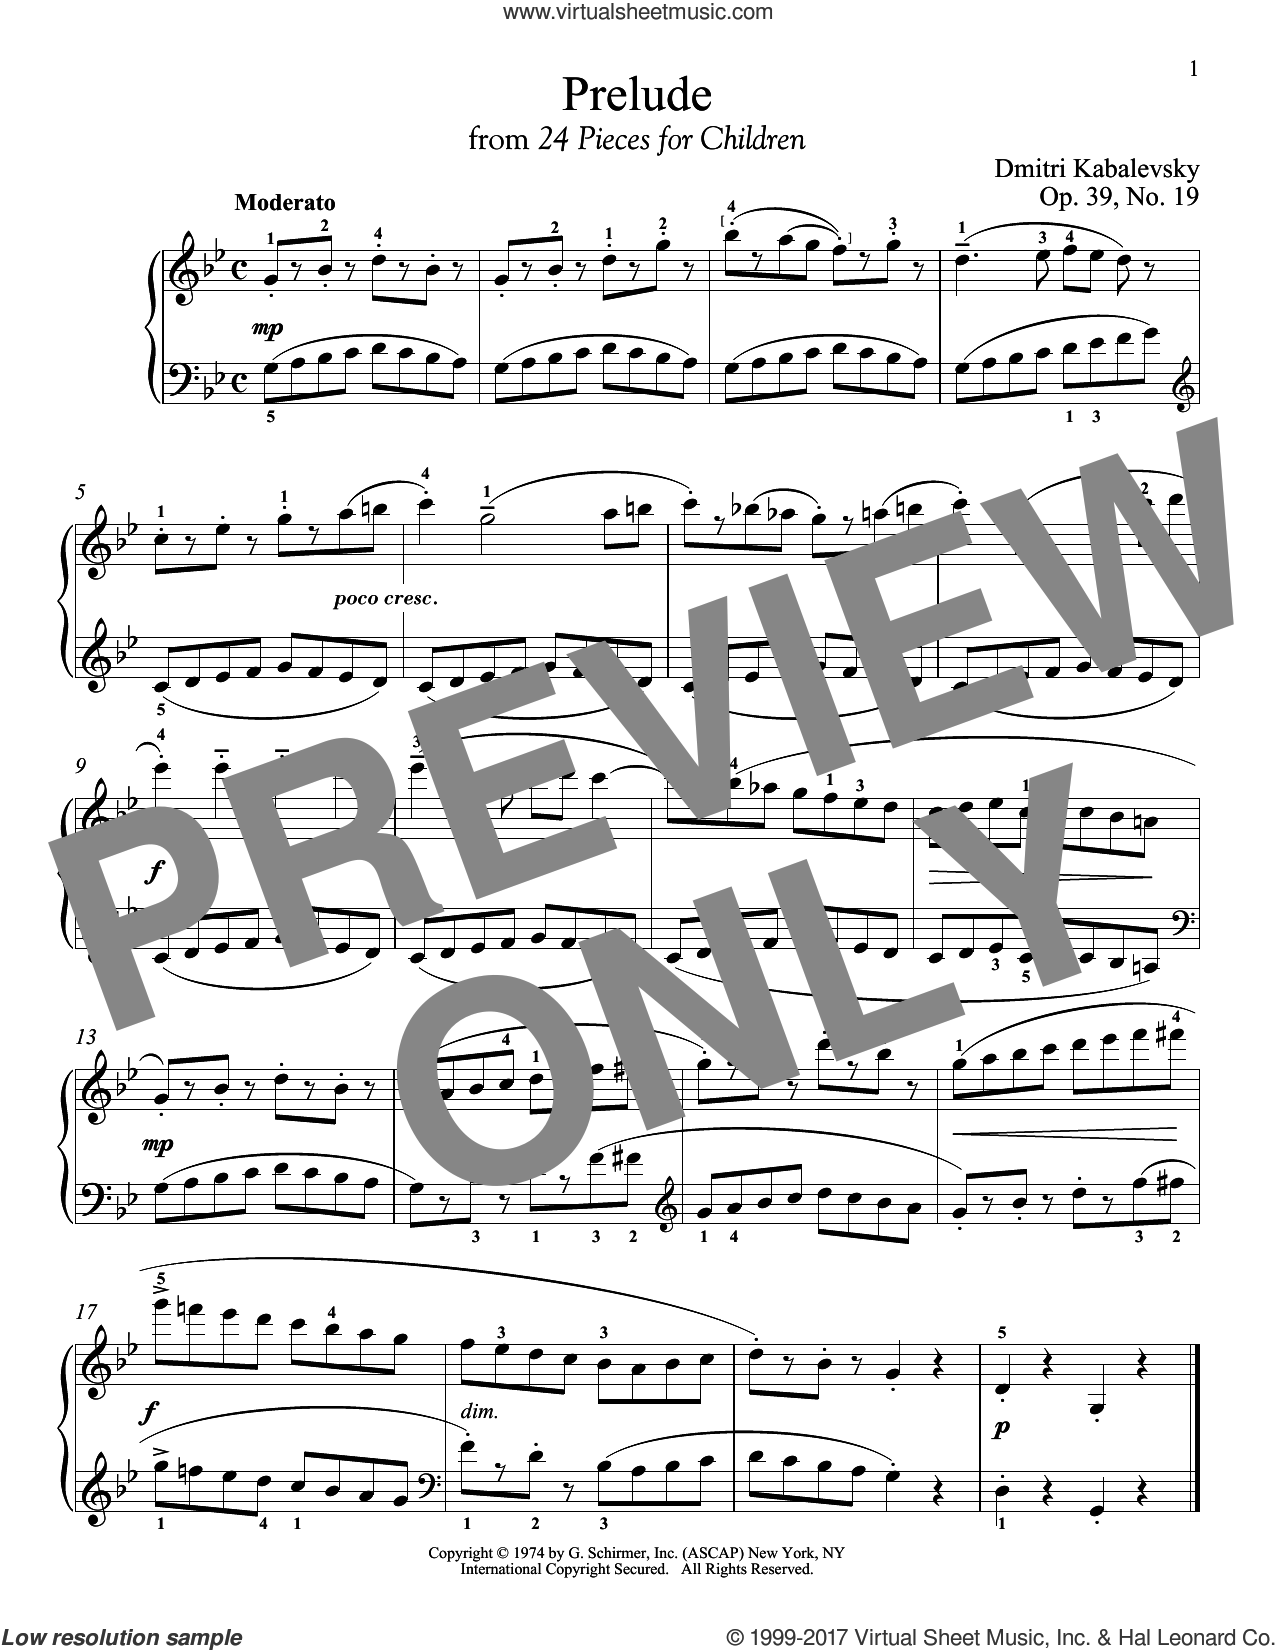 Two Preludes, Op. 39